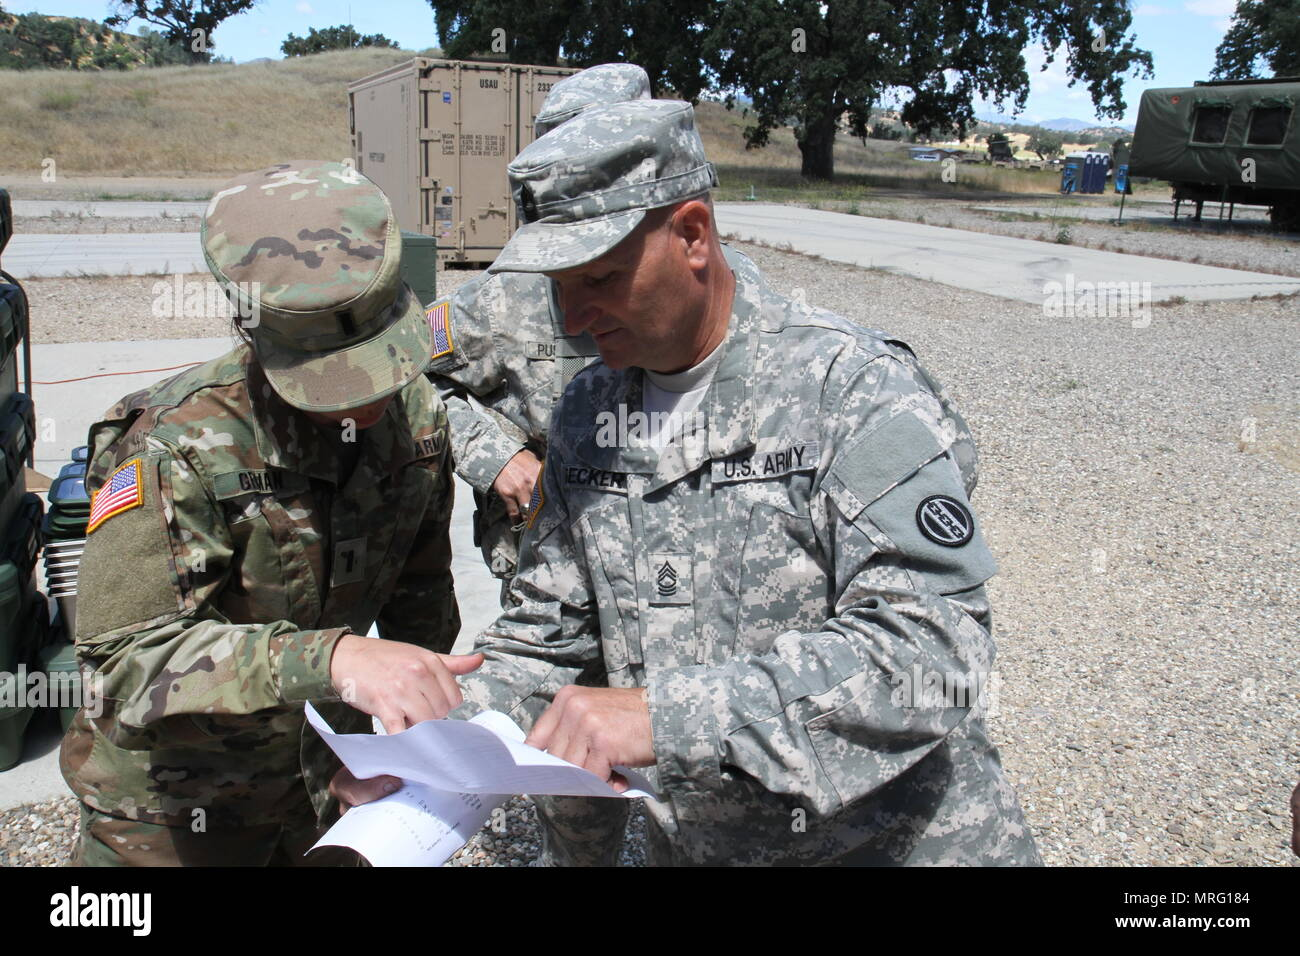 (Left) U.S. Army 1st Lt. Majken Geiman and (Right) Sgt. 1st Class Hugh Becker of the 698th Quartermaster Company discuss troop counts and plans to expedite the chow line at Tactical Assembly Area Ward on June 11, 2017 on Fort Hunter Liggett, Calif. More than 3000 U.S. Army Reserve Soldiers are participating in the 91st Training Division's Warrior Exercise 91-17-03 at Fort Hunter Liggett, California; the Warrior Exercise is a large scale collective training platform to generate capable, lethal and combat ready forces. (Photo by Spc. Eric Unwin/released) - Stock Image